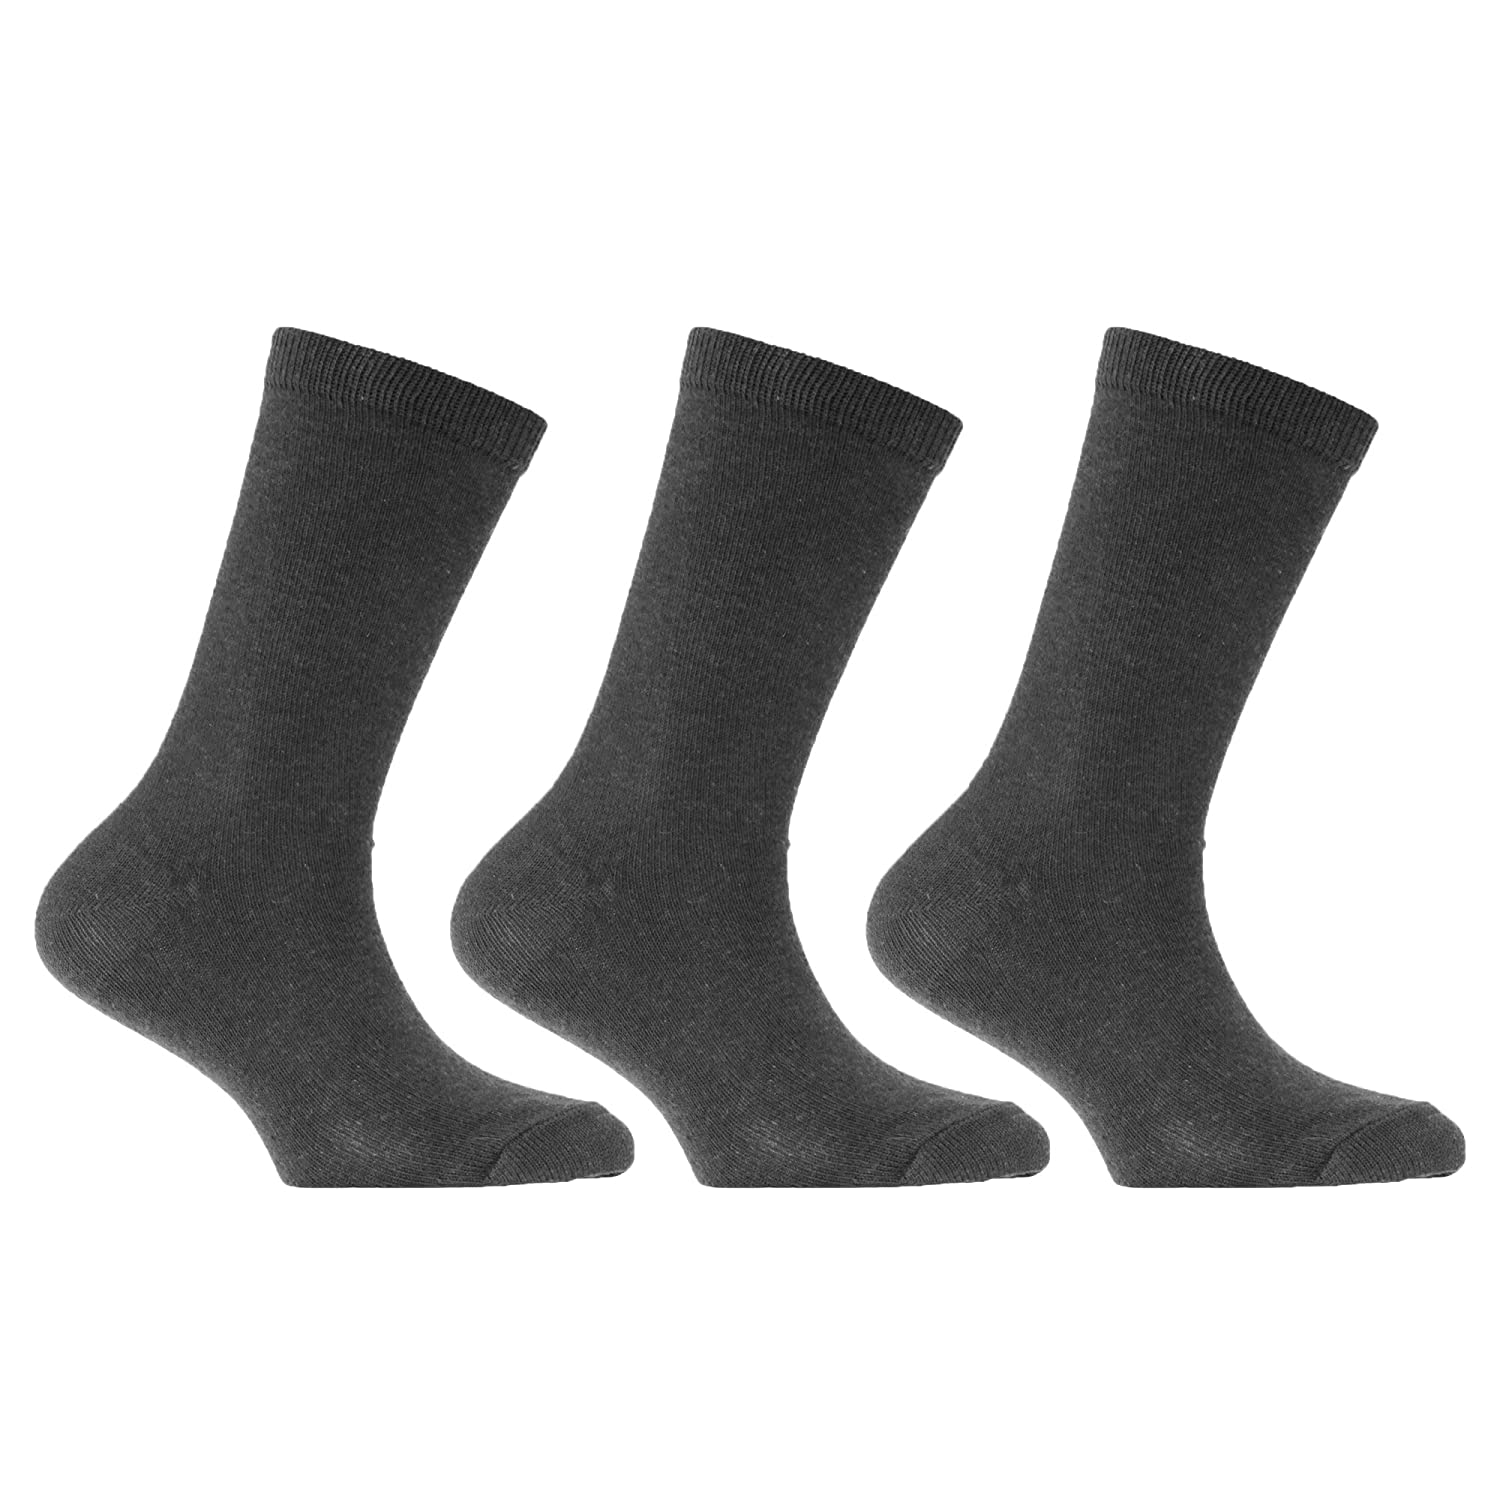 6 Pairs Boys / Girls Back to School Ankle Socks Grey uk 4-6 (11 plus years)